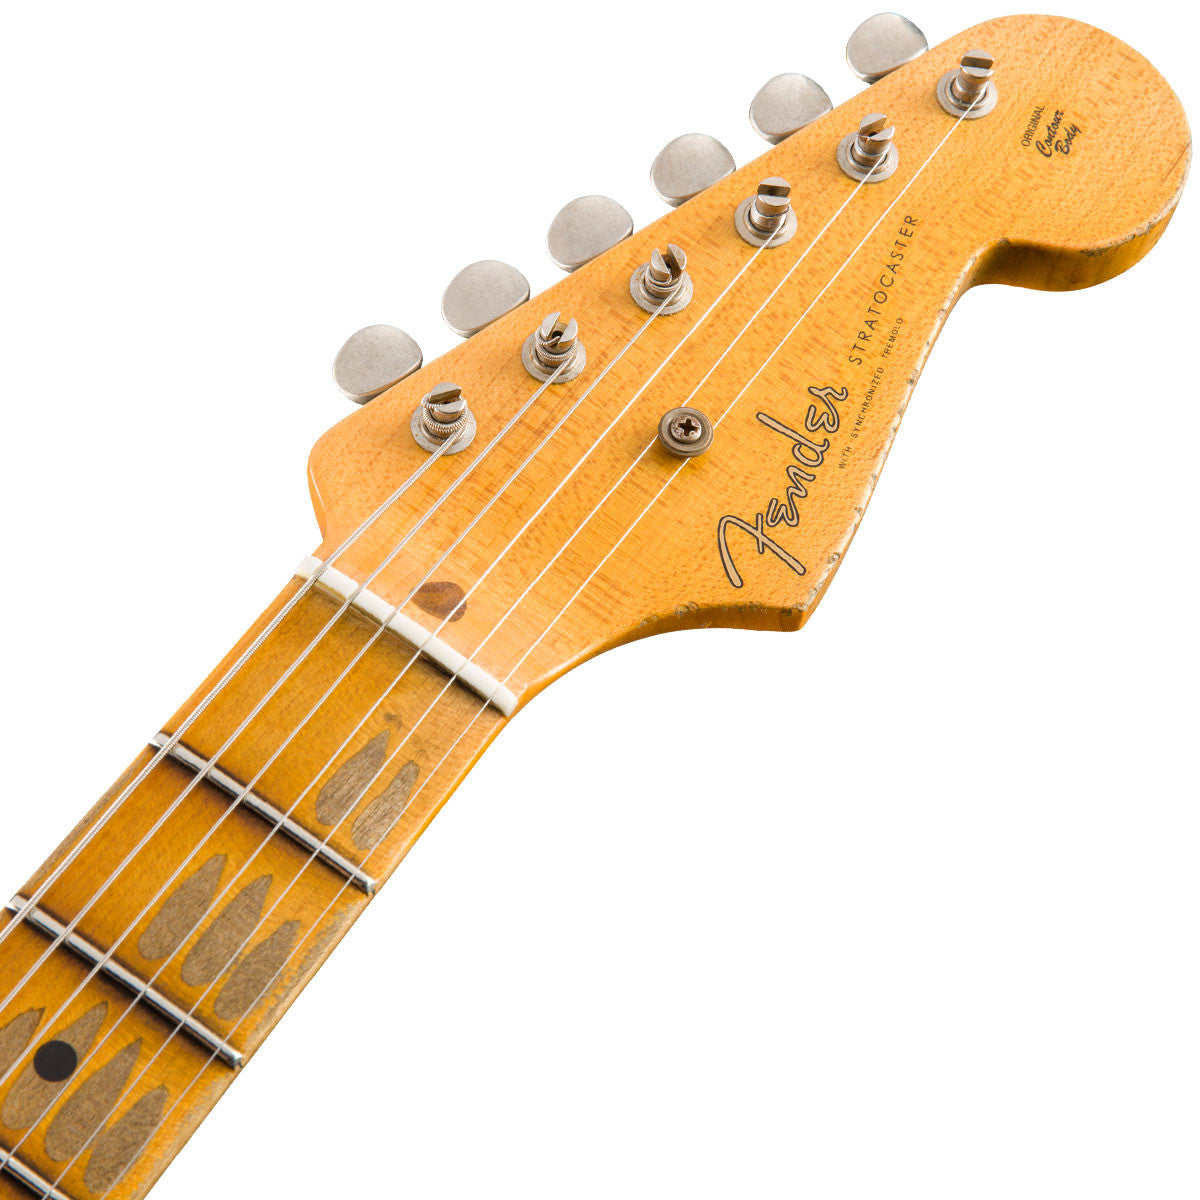 Fender Custom Shop 1955 Heavy Relic Stratocaster 55 Desert Tan over Chocolate 2 Tone Sunburst | Lucky Fret Music Co.